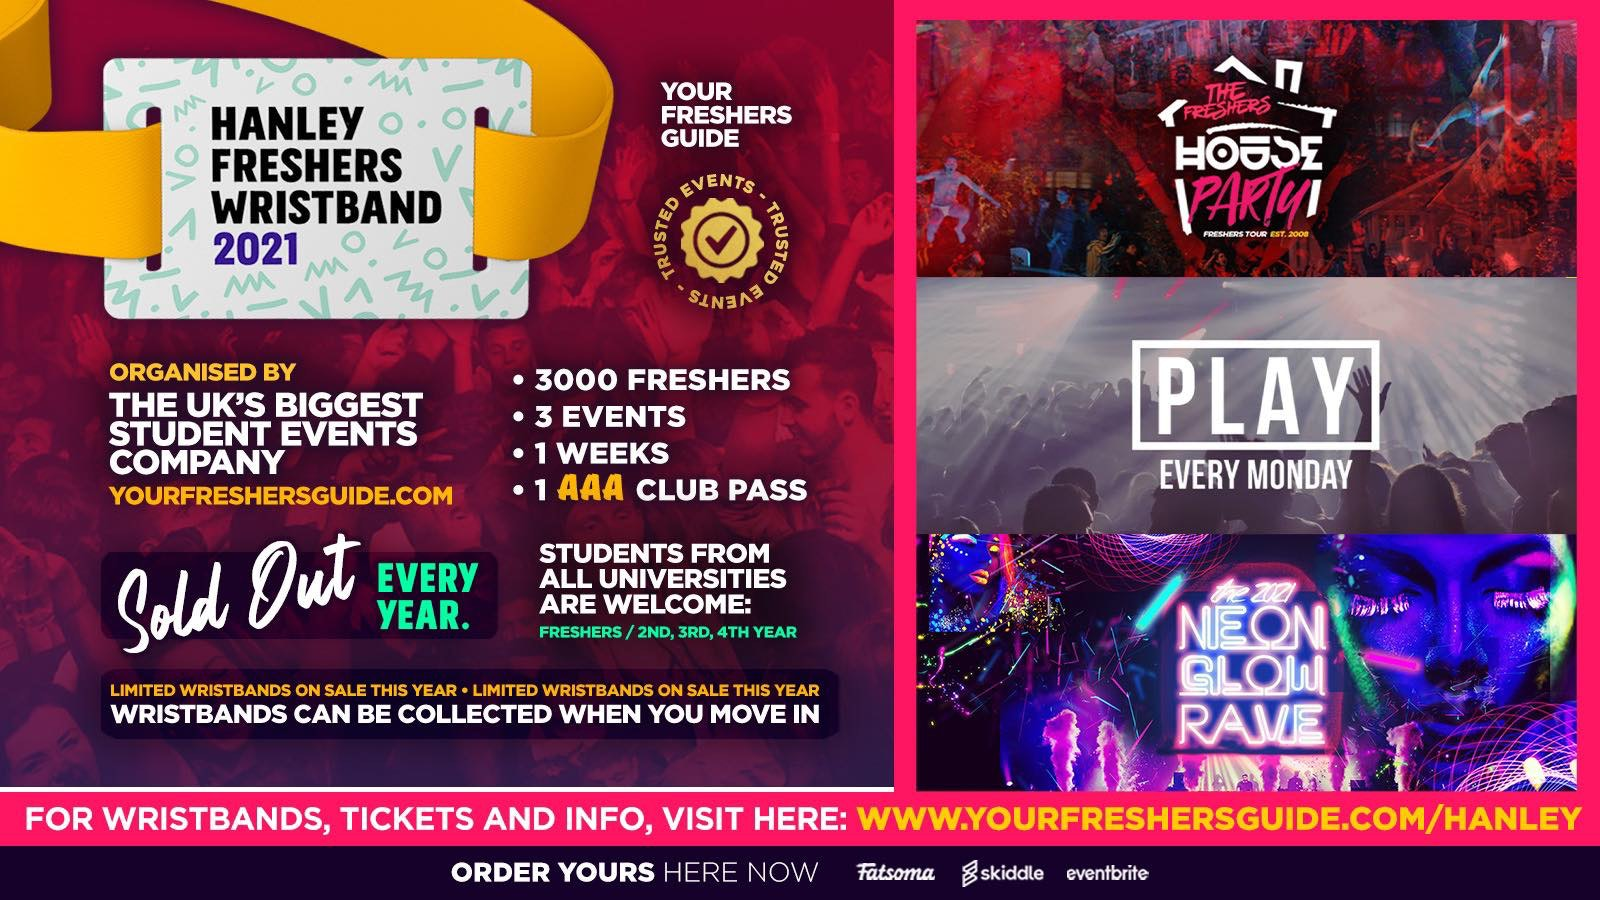 Hanley Freshers Wristband 2021 – The Official Freshers Pass | Includes the biggest events in Hanley